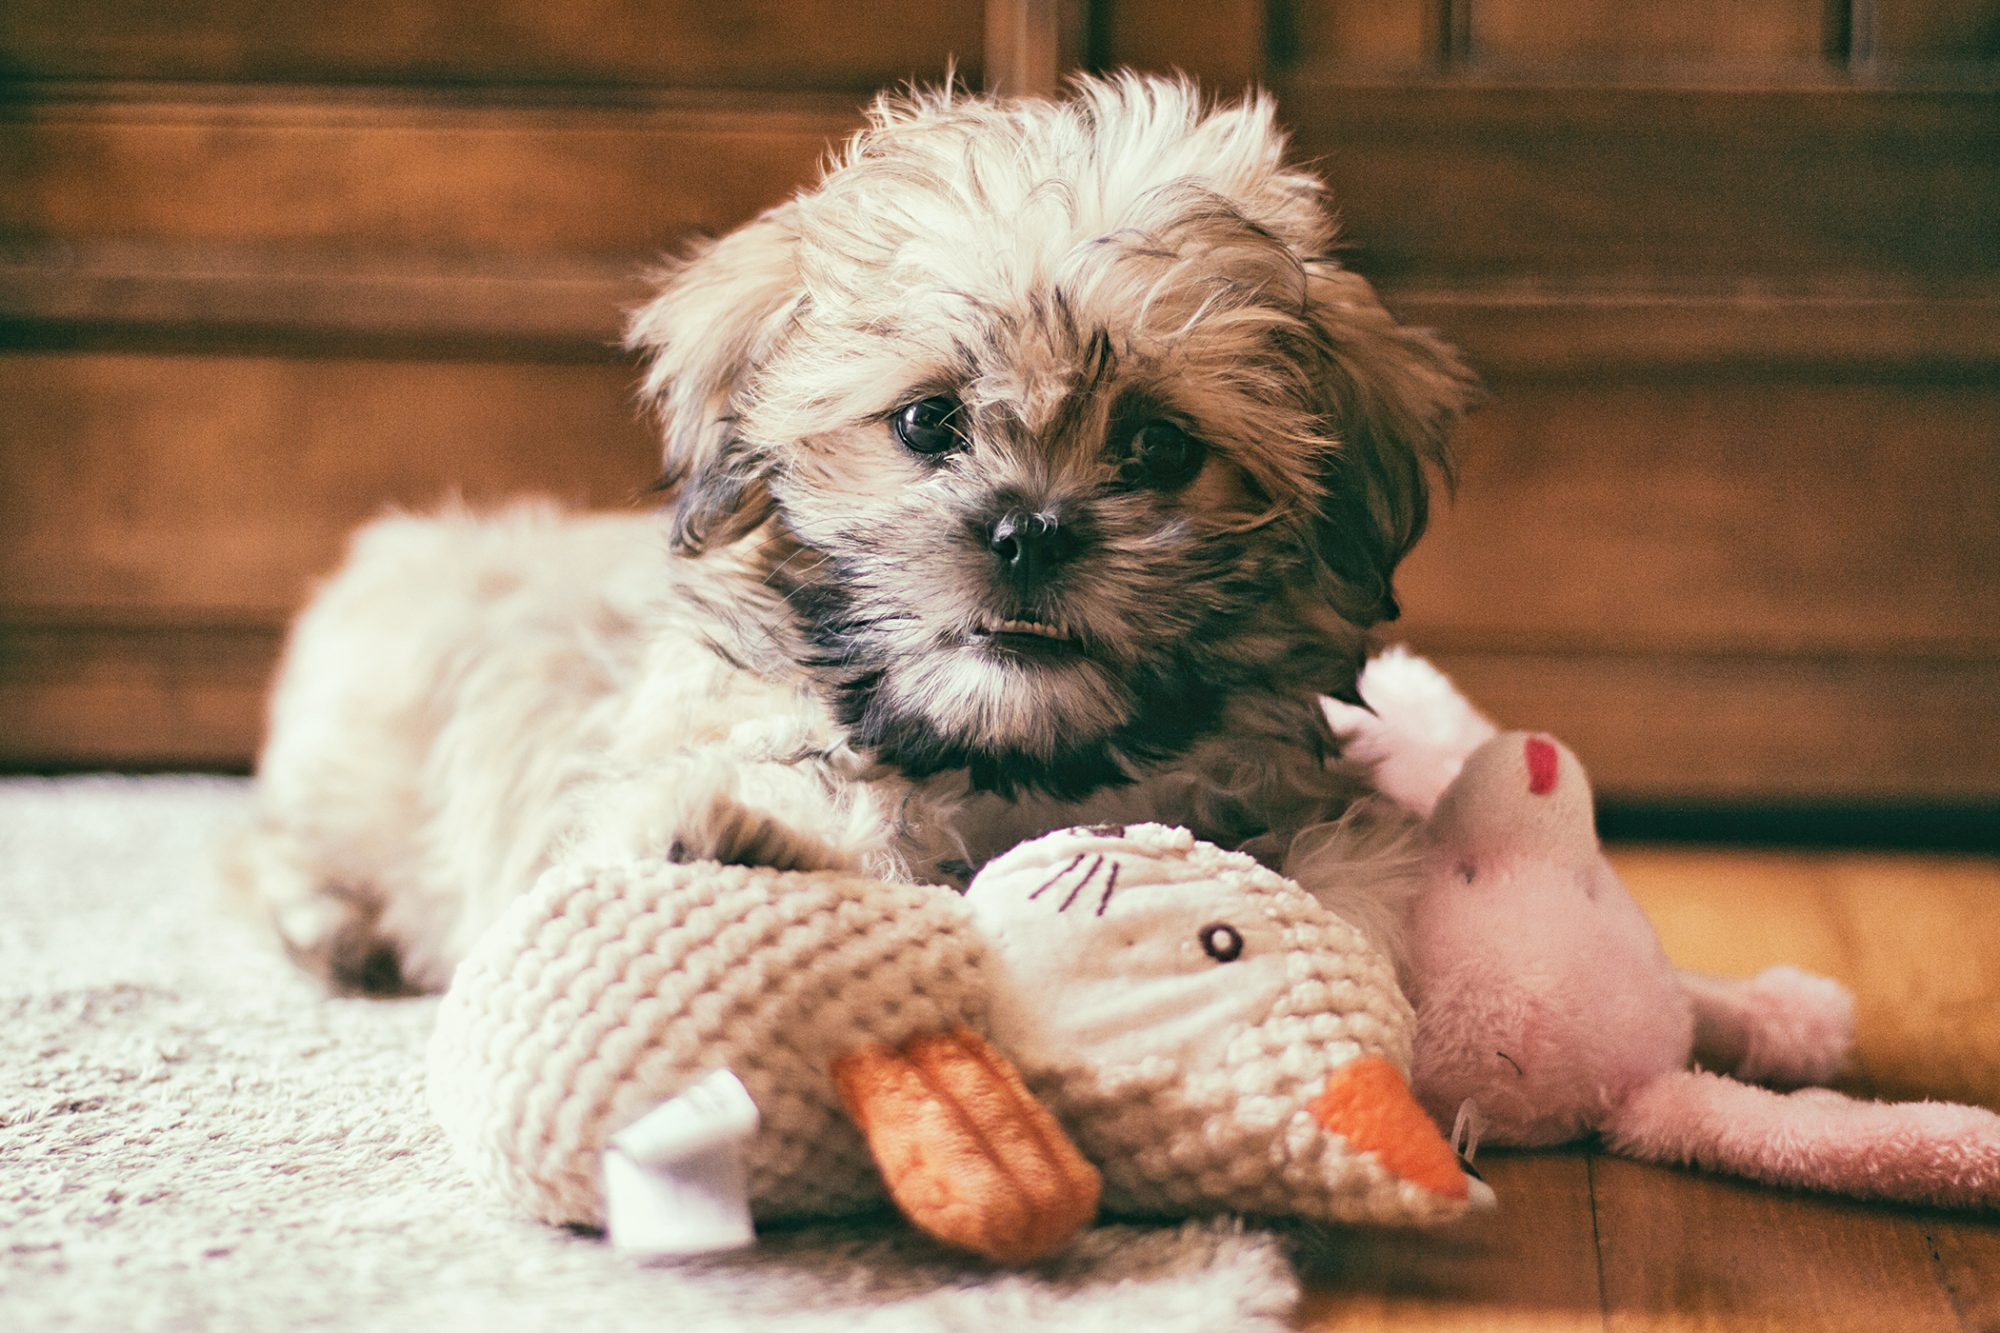 malshi puppy lying floor with stuffed toys